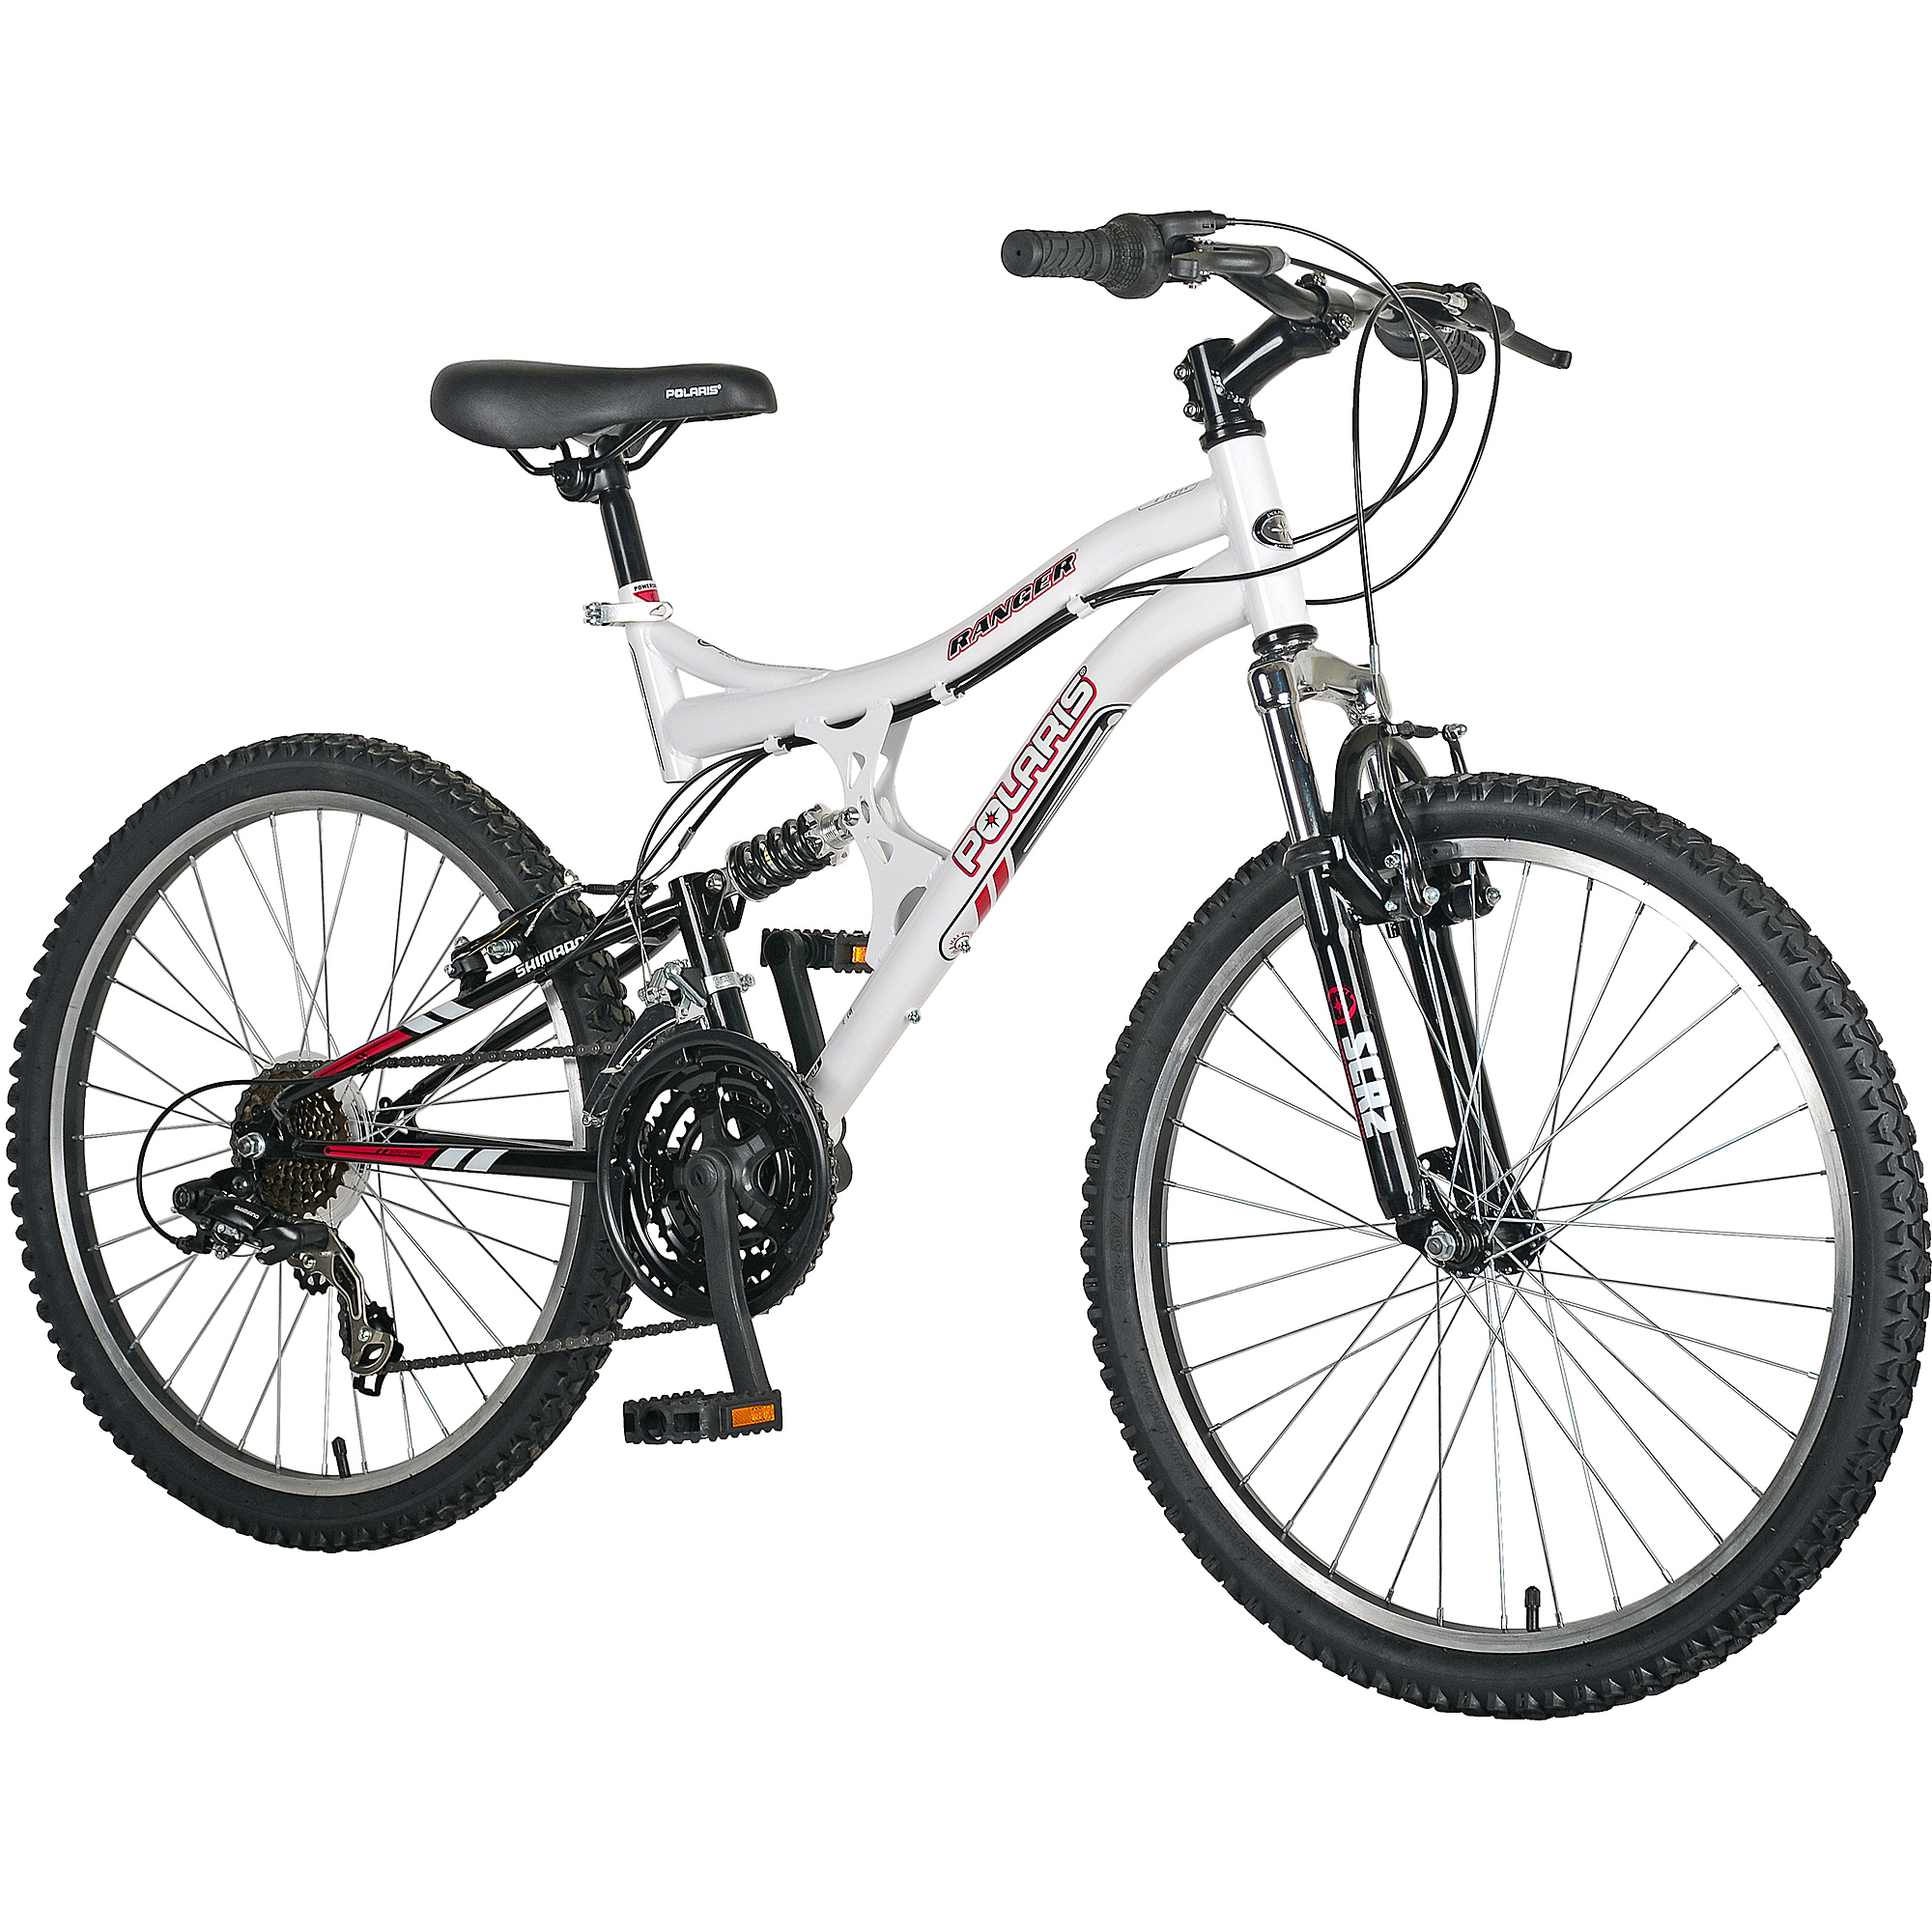 Polaris Ranger G.0 Mountain Bike